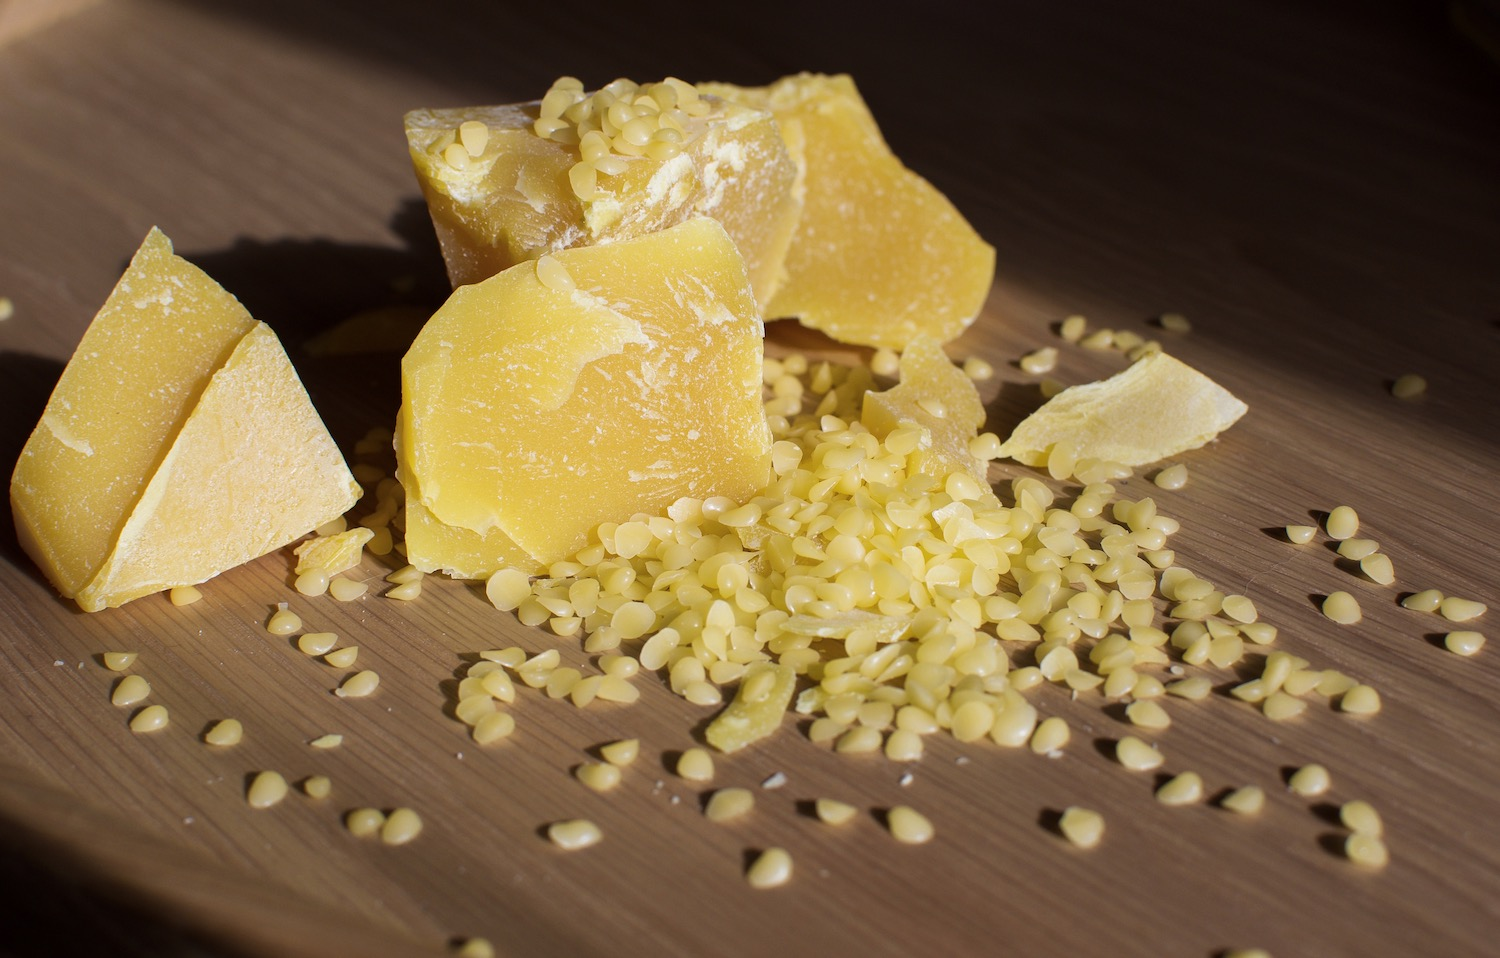 How to use beeswax 1